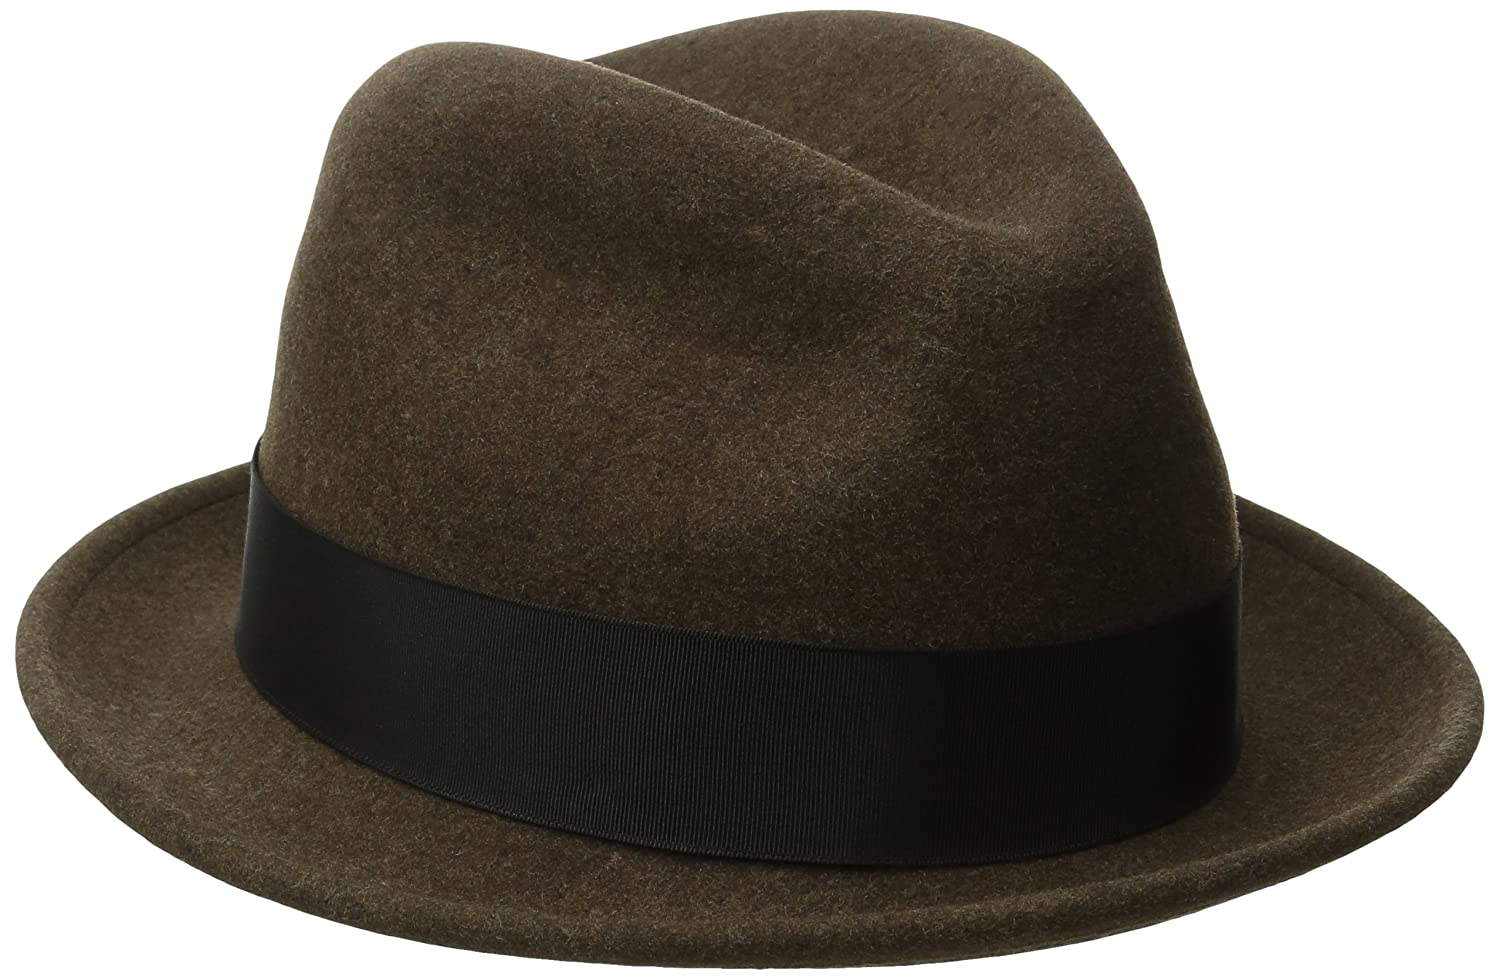 57e4f00b8dff2 Bailey of Hollywood Tino Trilby Hat  Amazon.co.uk  Clothing